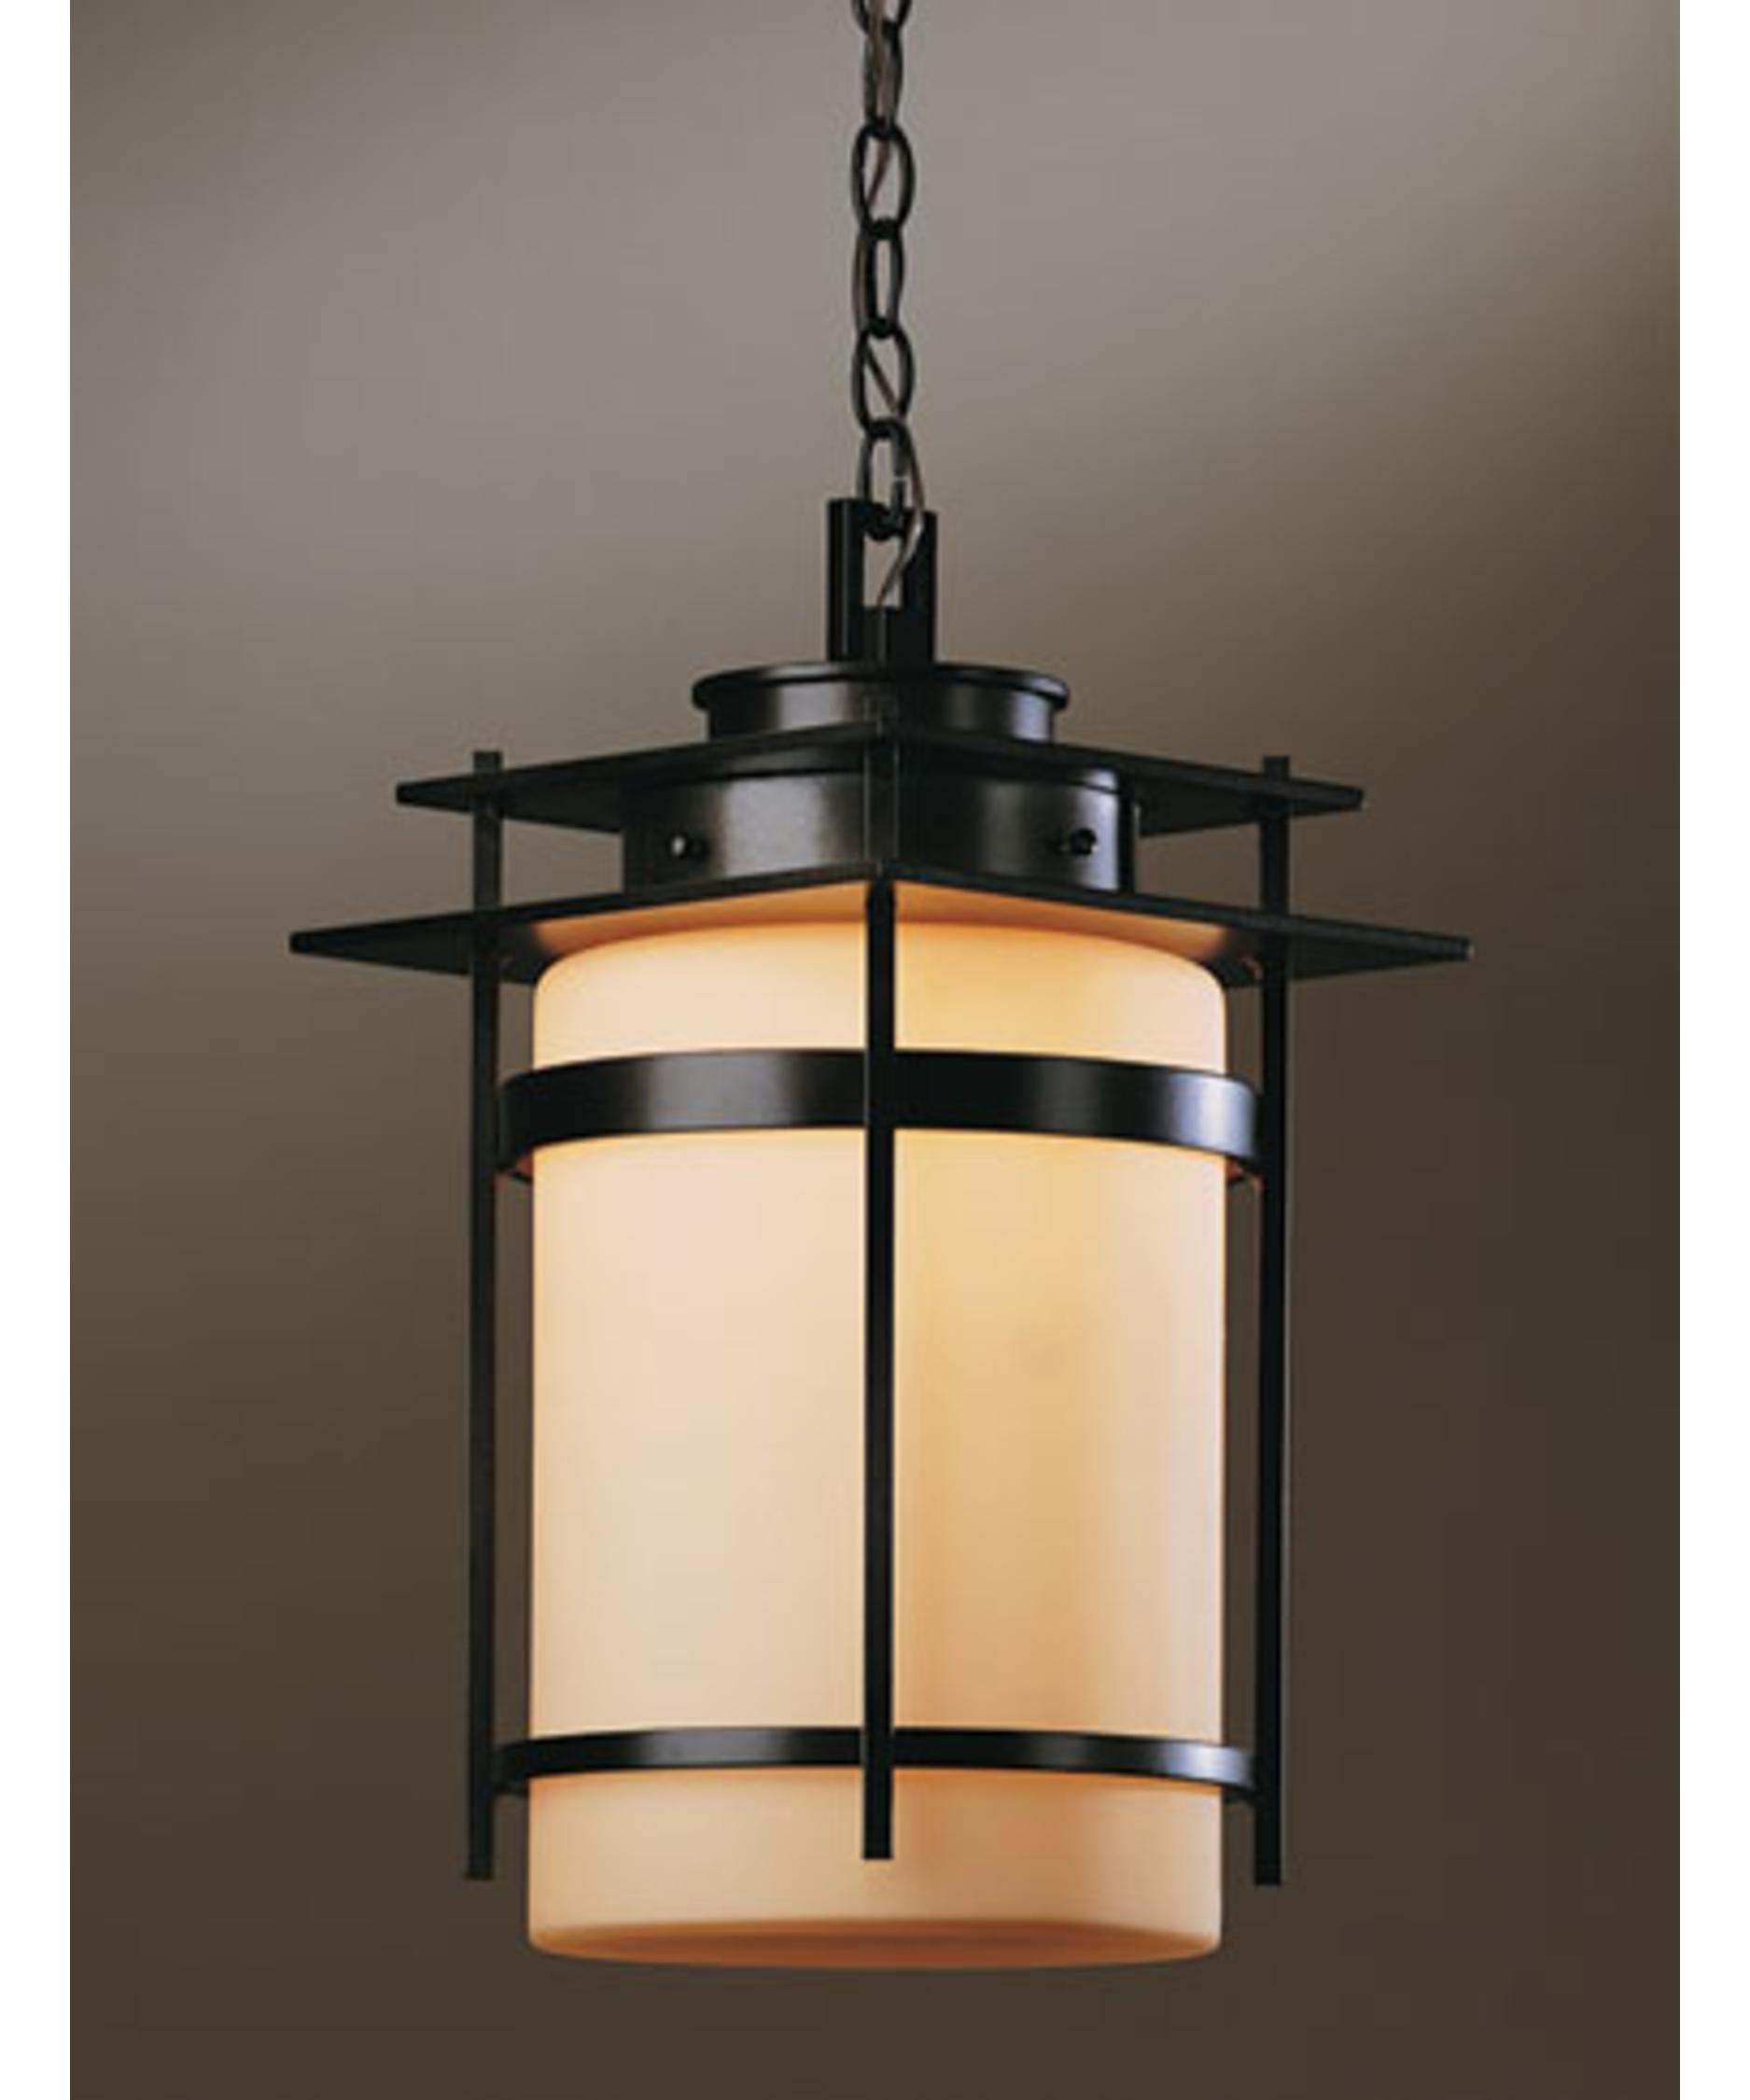 Hanging Porch Light Hinkley Lighting 2372 Nantucket 6 Inch Wide 2 With Regard To Contemporary Hanging Porch Hinkley Lighting (View 4 of 15)